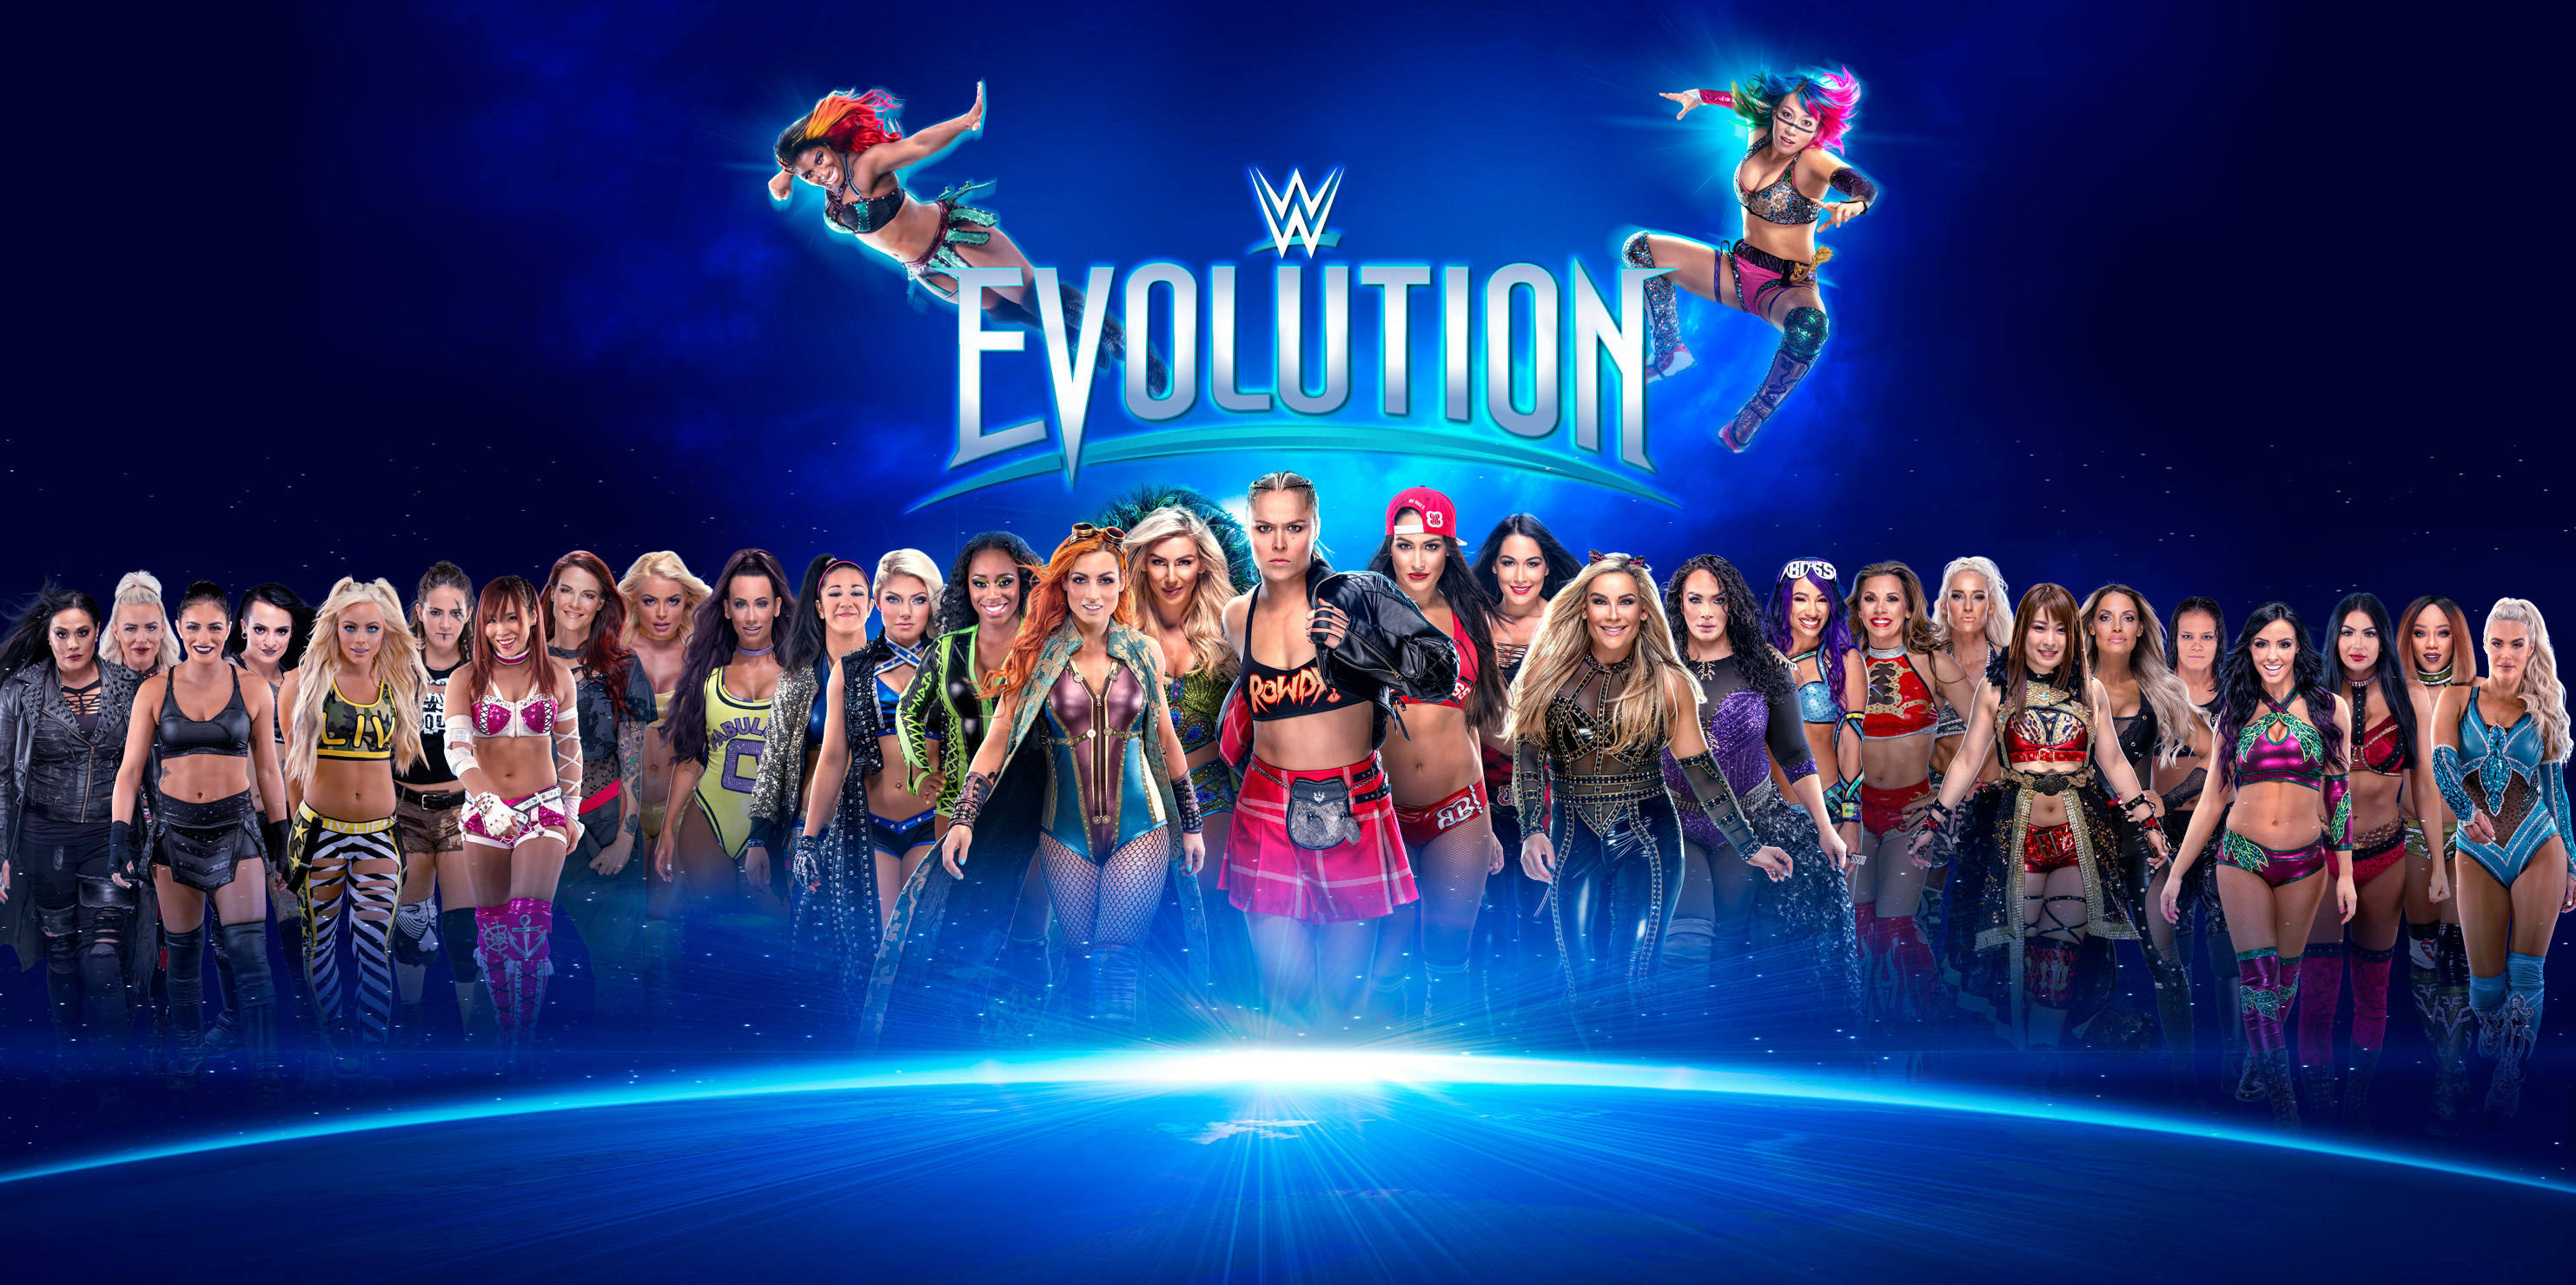 64656_Intl_EVOLUTION_PPV_KeyArt_HORIZ_HD